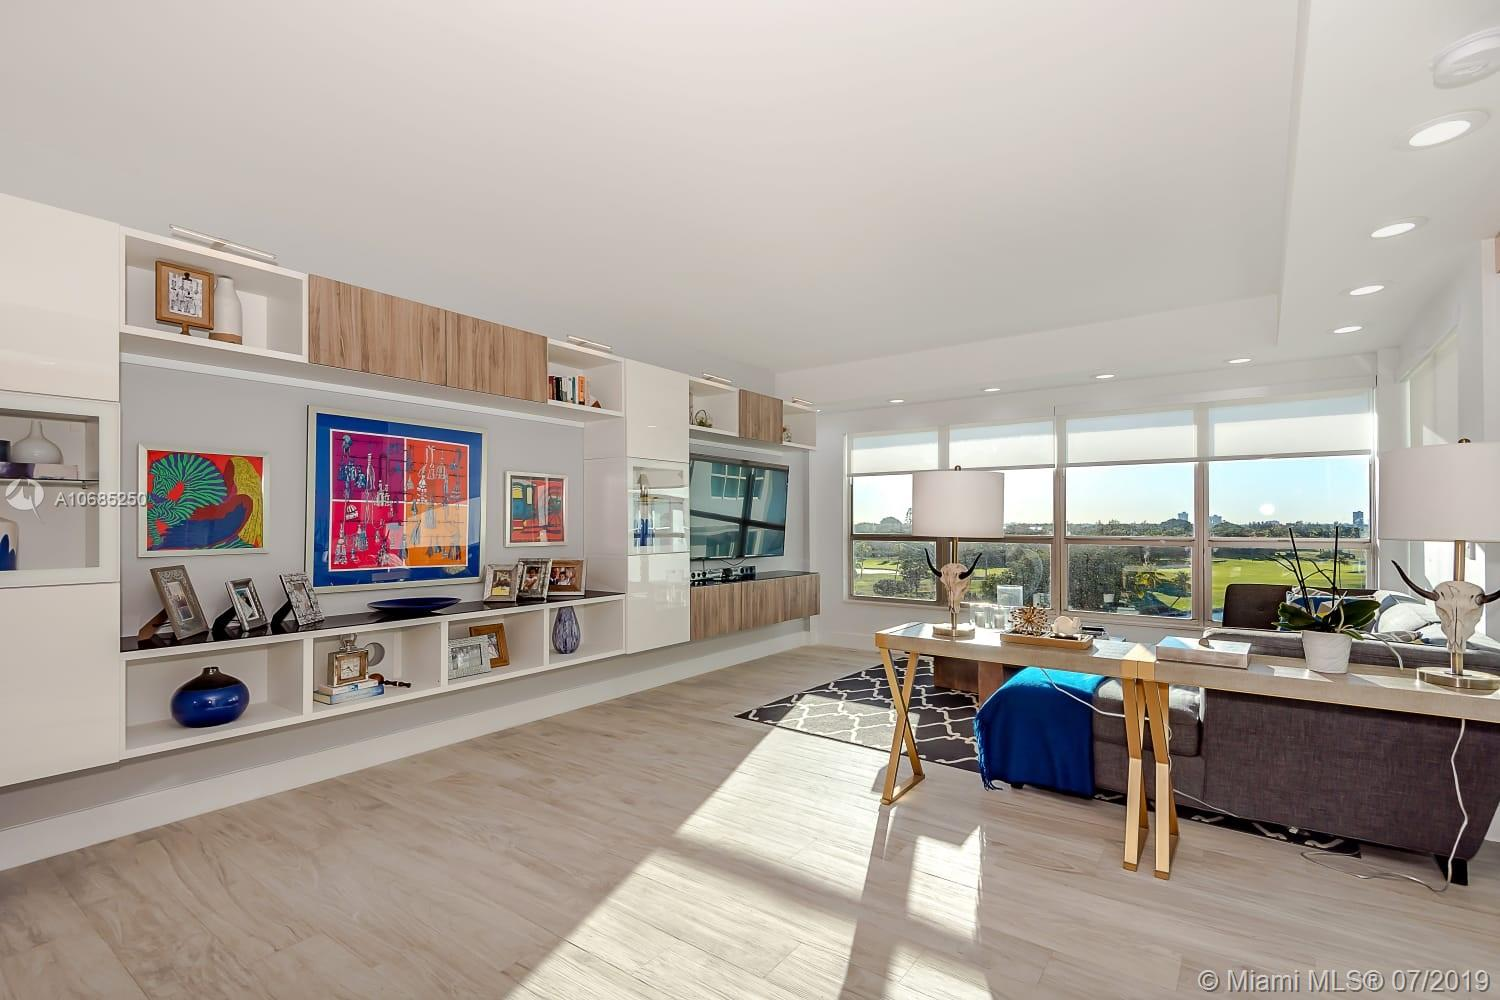 This 2 bedrooms 2 bath condo is located in one of the most exclusive areas of Miami Dade, the unit is 100% remodel by a professional designer and contractor Javier Perez. Please look at the pictures and be the judge of this fabulous condo.  The iconic Blair House was designed by A. Herbert Mathes (Fontainebleau/Standard Hotels) and is located a short stroll to the beach, parks and Bal Harbour Shops. Amenities include doorman, security, bayfront, swimming pool and Gym. Rated A schools in the area. Best views in the building! Impact insulated windows with low E to help with the heat from the sun.